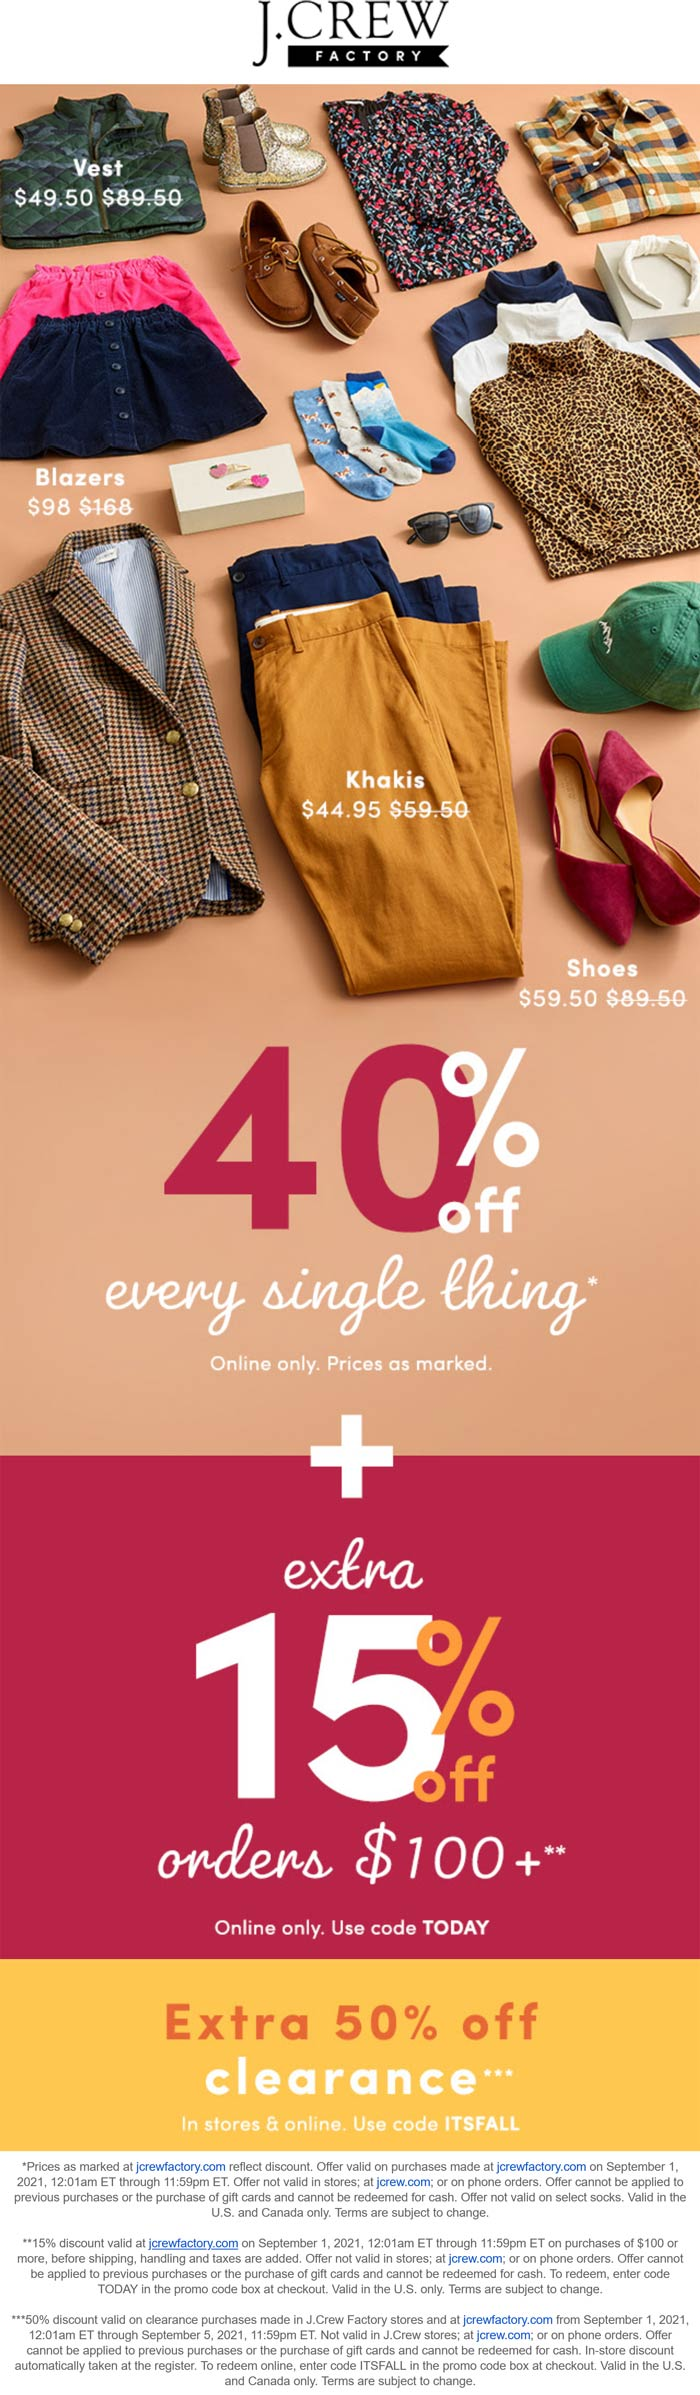 J.Crew Factory stores Coupon  40-55% off everything online today at J.Crew Factory via promo code TODAY #jcrewfactory